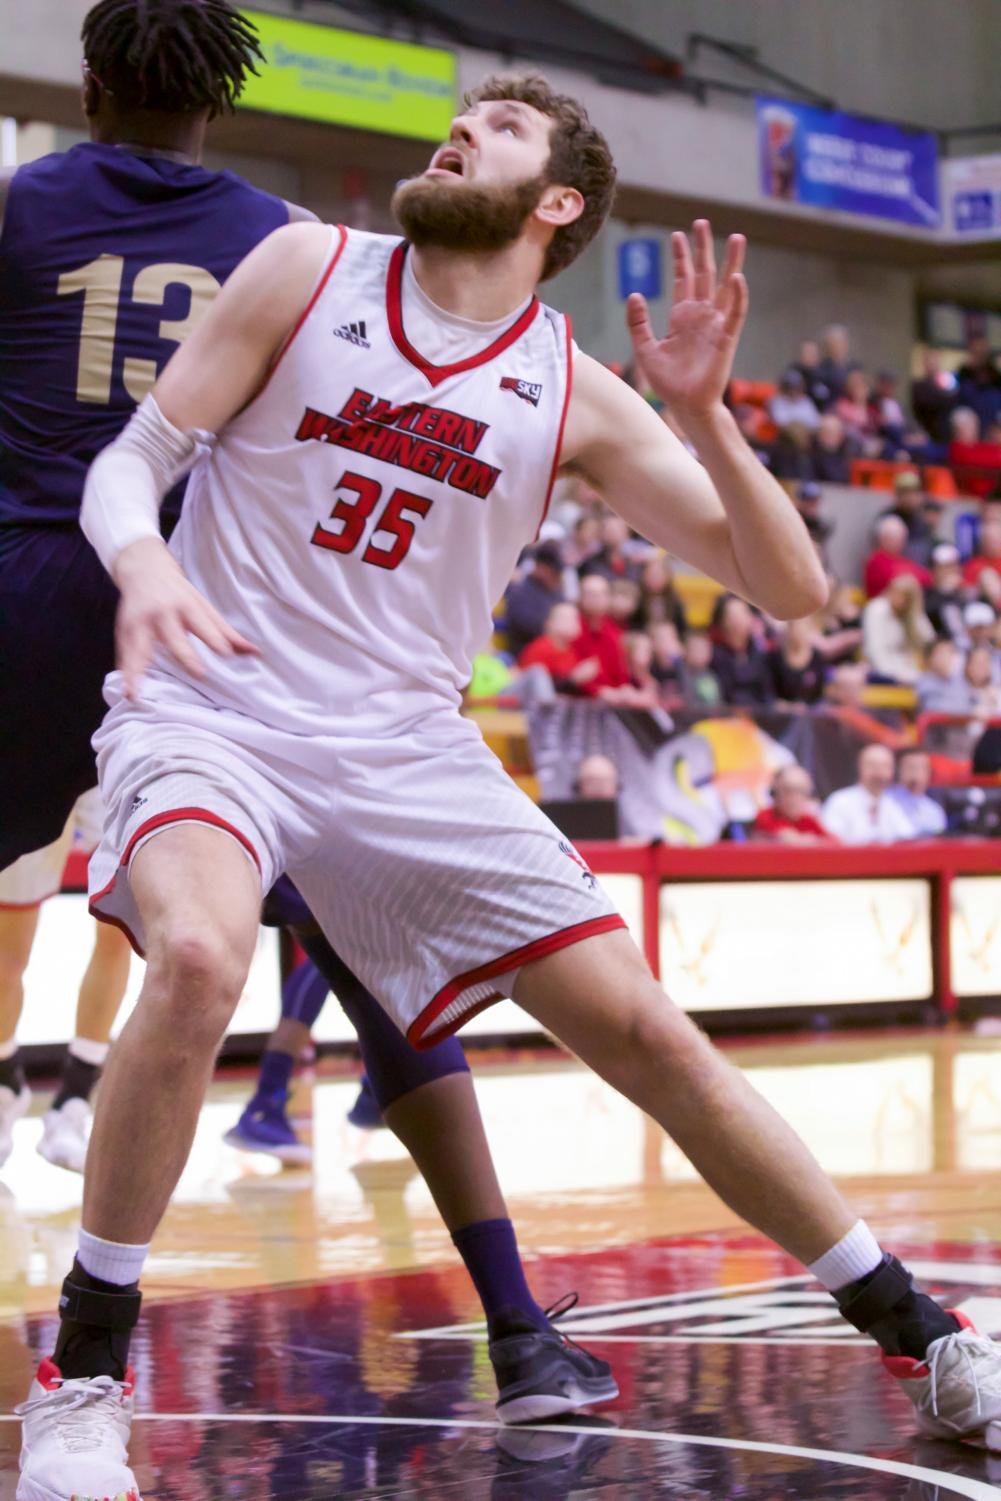 EWU sophomore forward Tanner Groves boxes out for a rebound. Groves scored 16 points in EWU's 74-45 win over MSU Saturday.